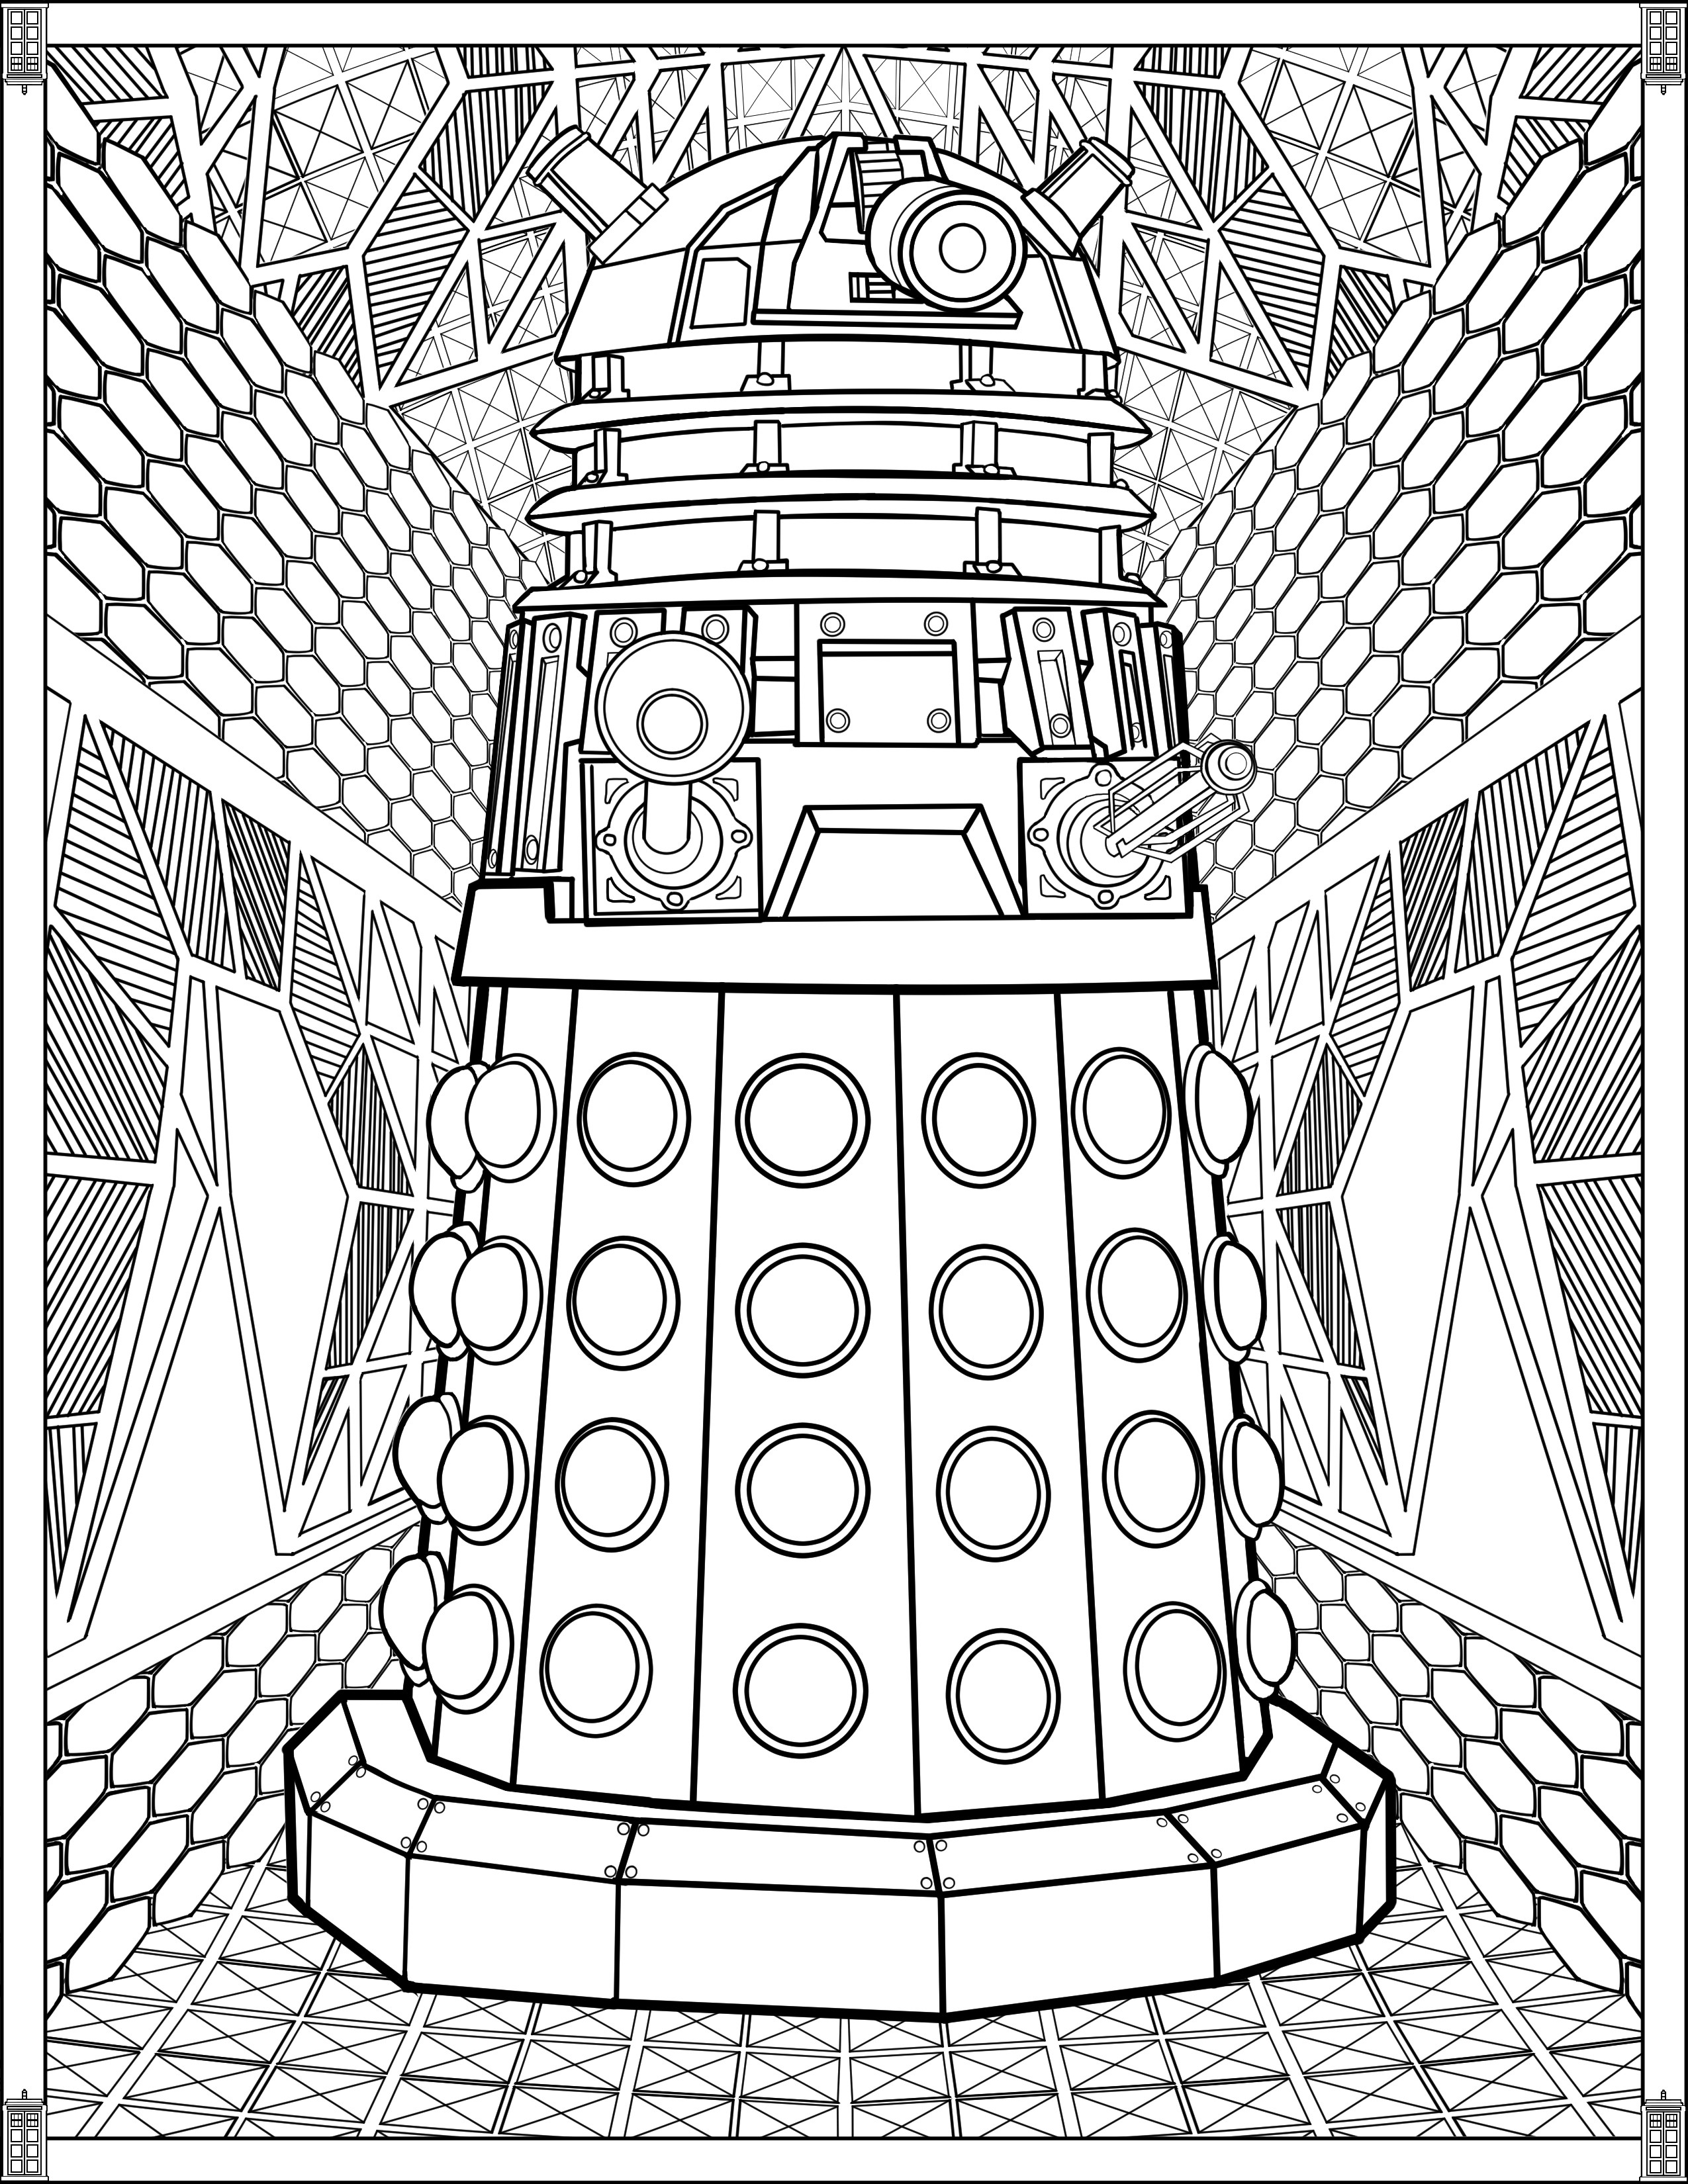 Doctor Who Coloring Book Pages  Doctor Who Wibbly Wobbly Timey Wimey Coloring Pages